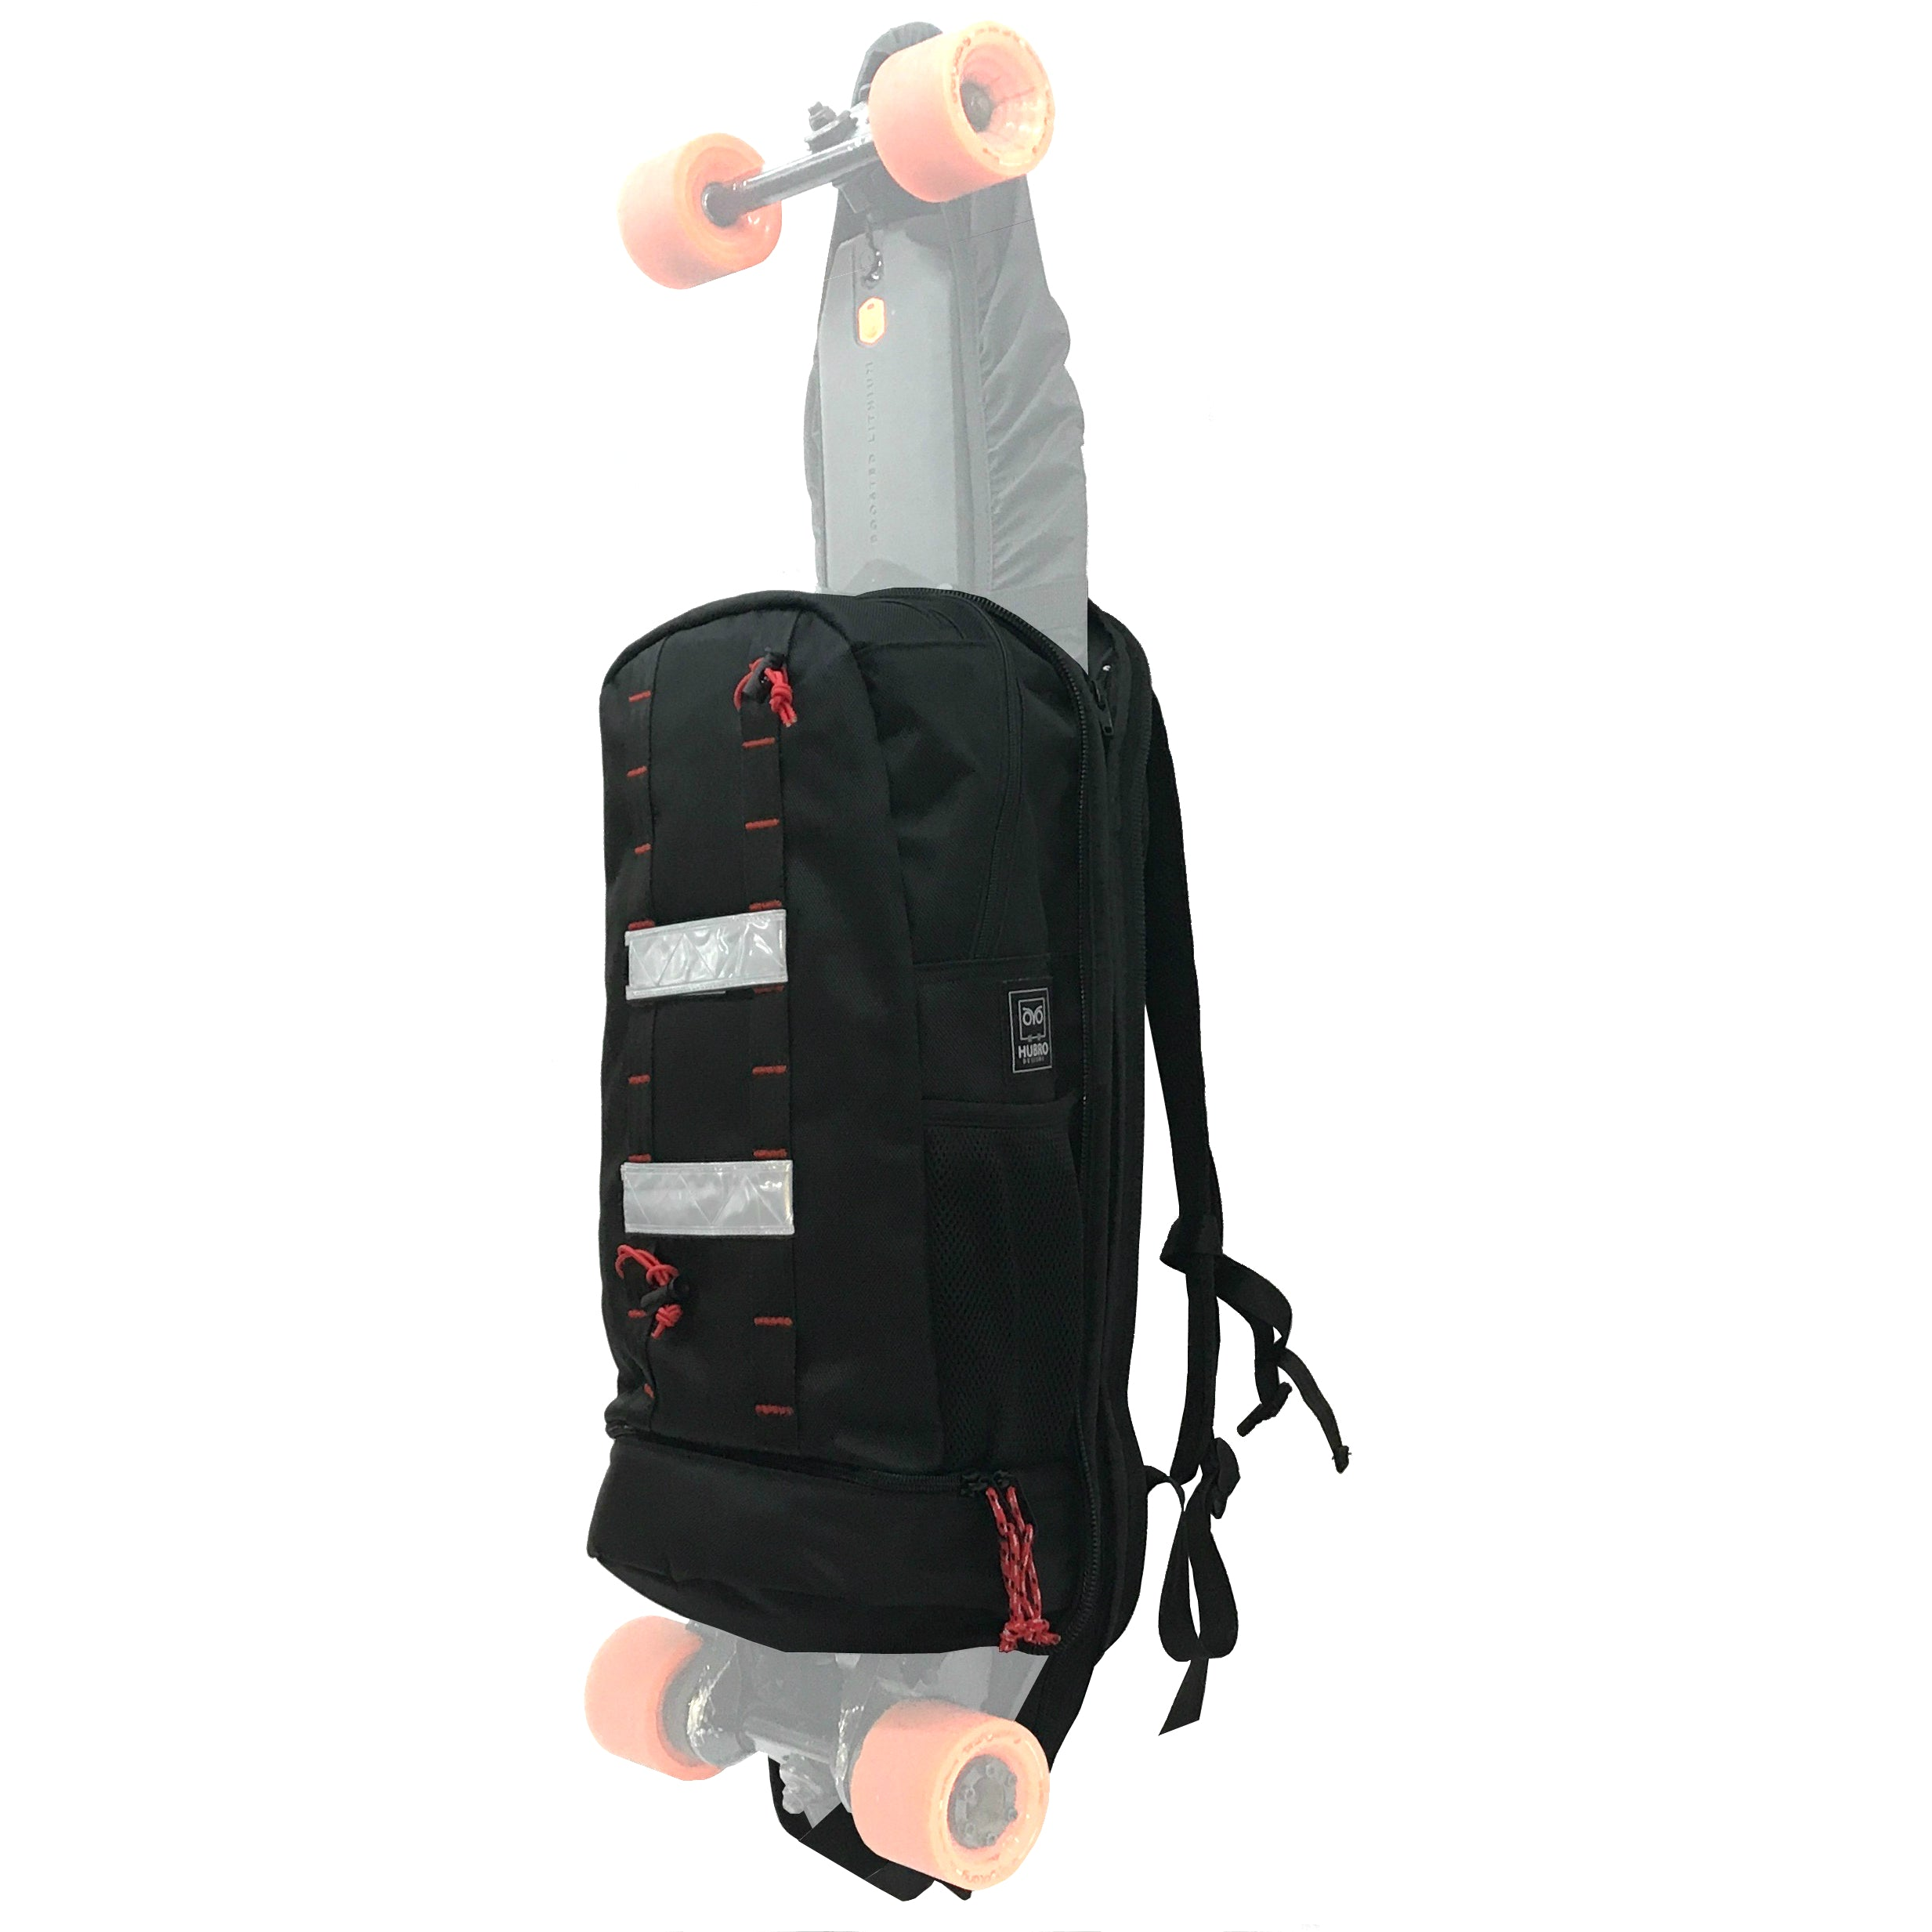 Parapack Boosted Board Backpack (BrdBag G3.1)